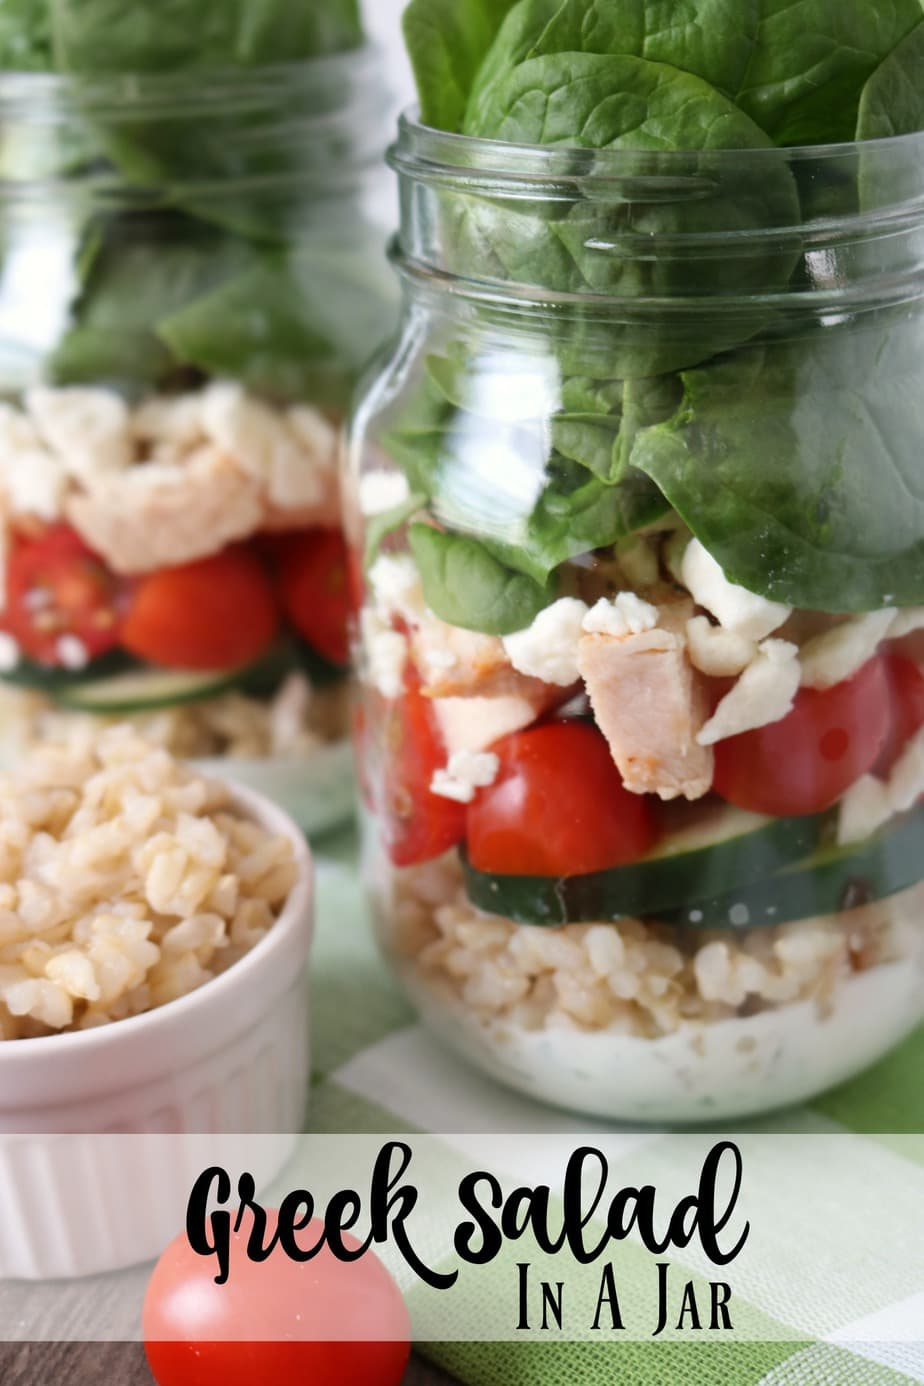 Greek Salad in a jar is the perfect skinny lunch meal prep idea.